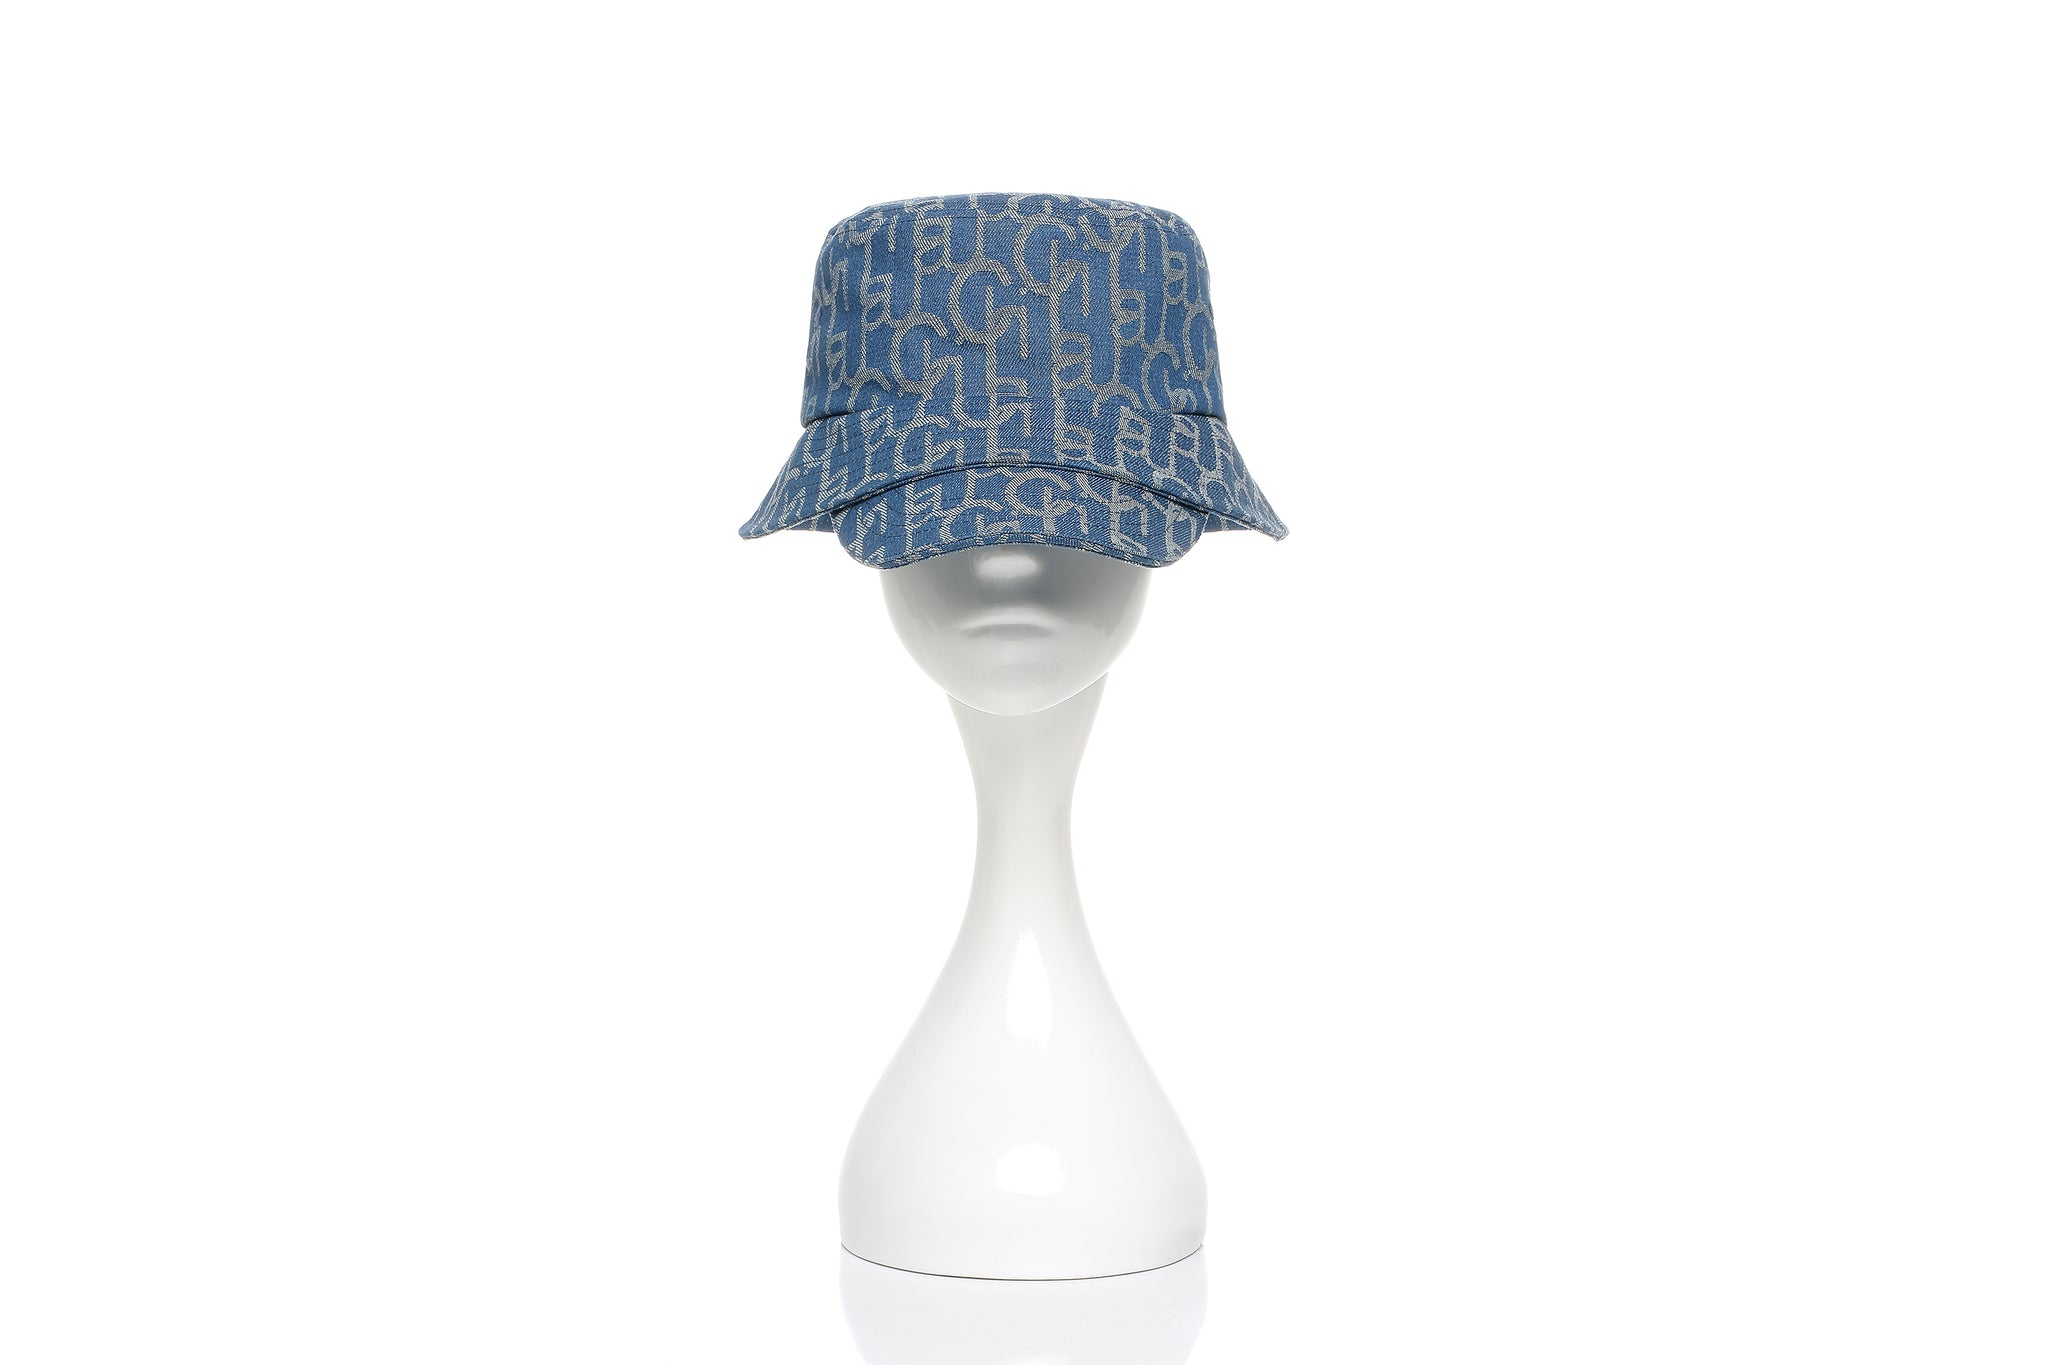 Chichi Laulau Jacquard Bucket Hat with Brim, Small Brim, Light Blue